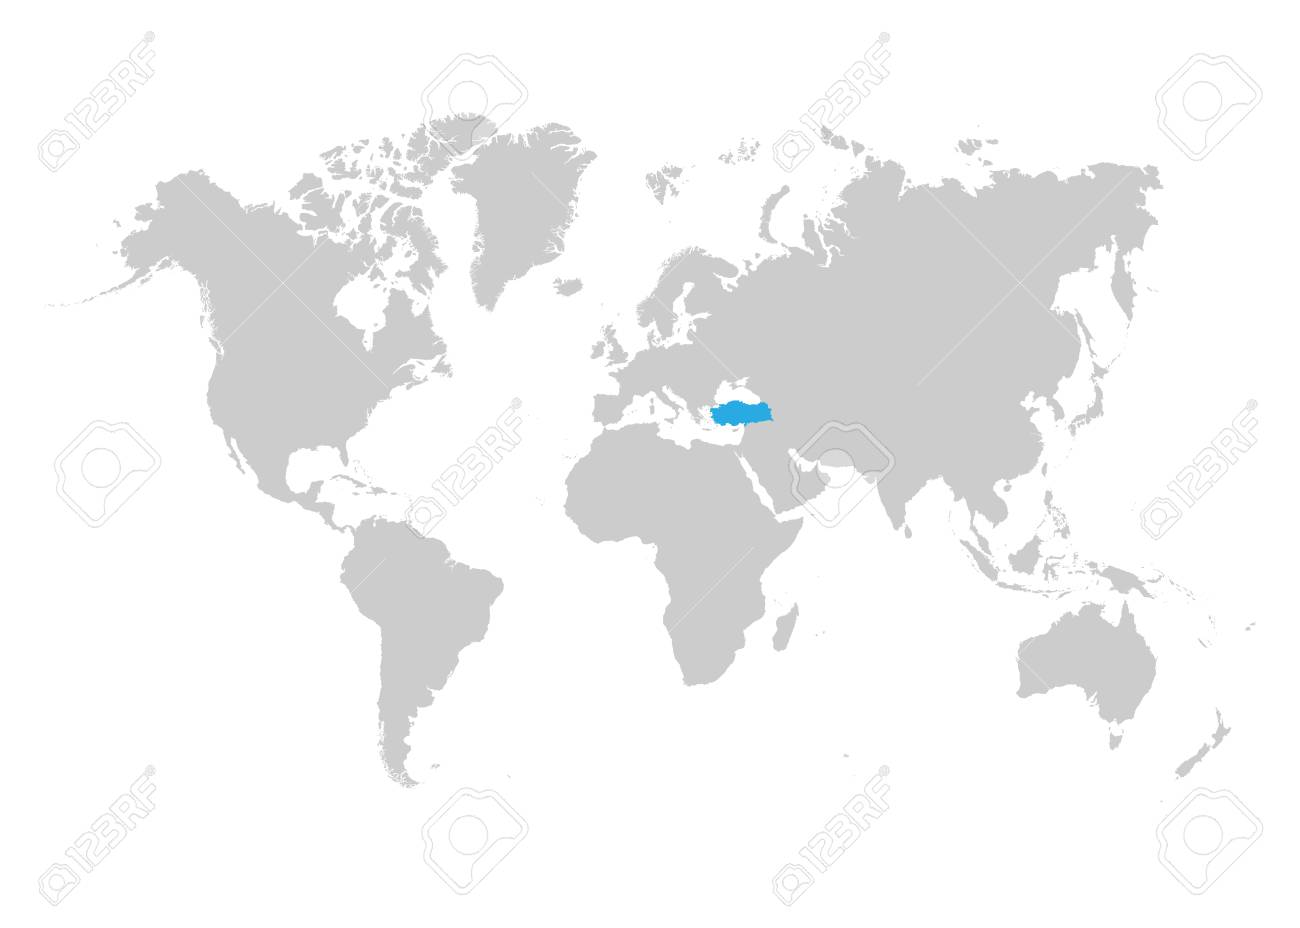 The map of Turkey is highlighted in blue on the world map